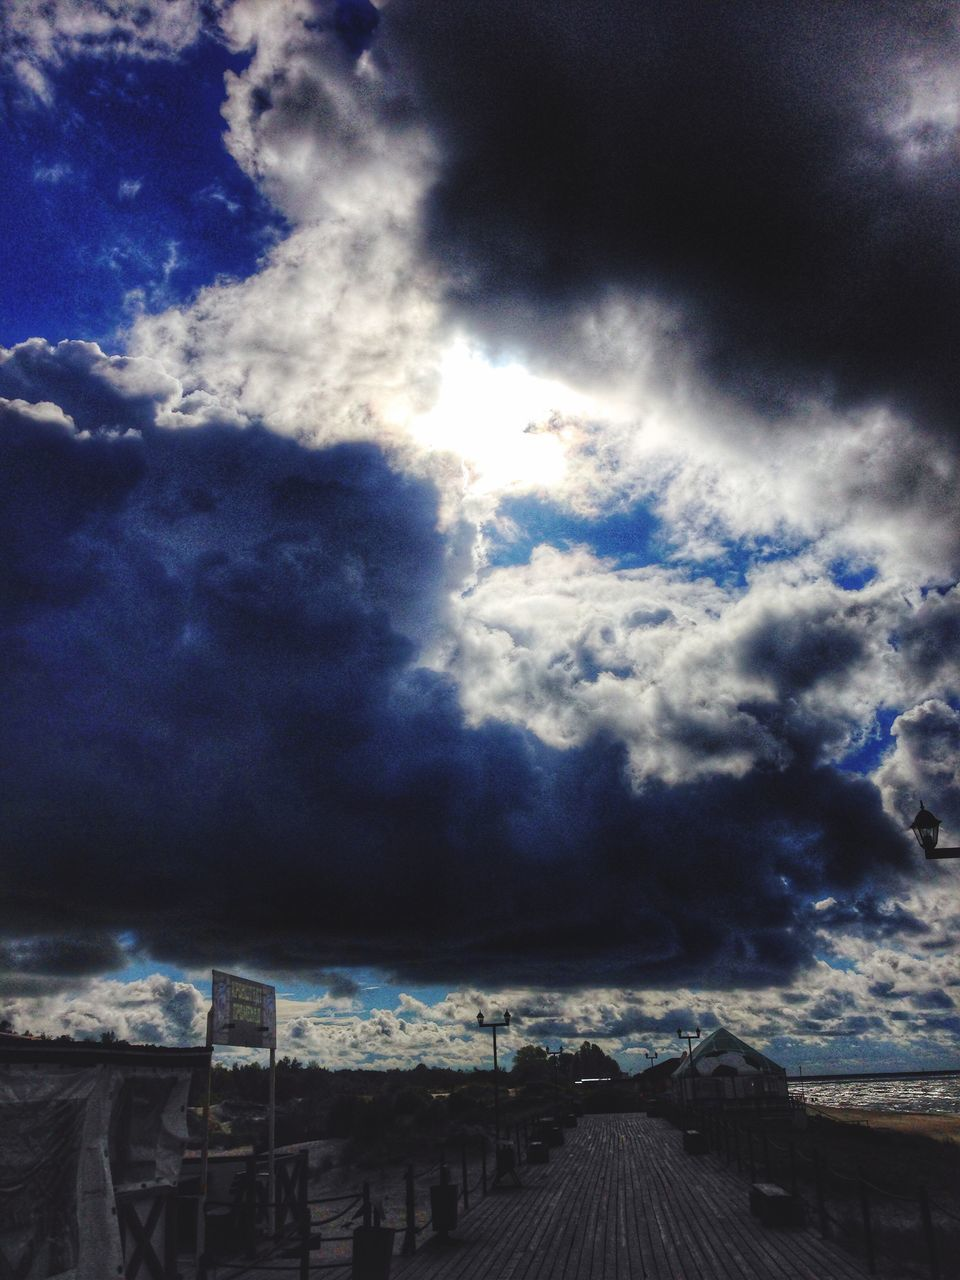 cloud - sky, weather, sky, nature, no people, scenics, day, beauty in nature, outdoors, tranquil scene, tranquility, blue, storm cloud